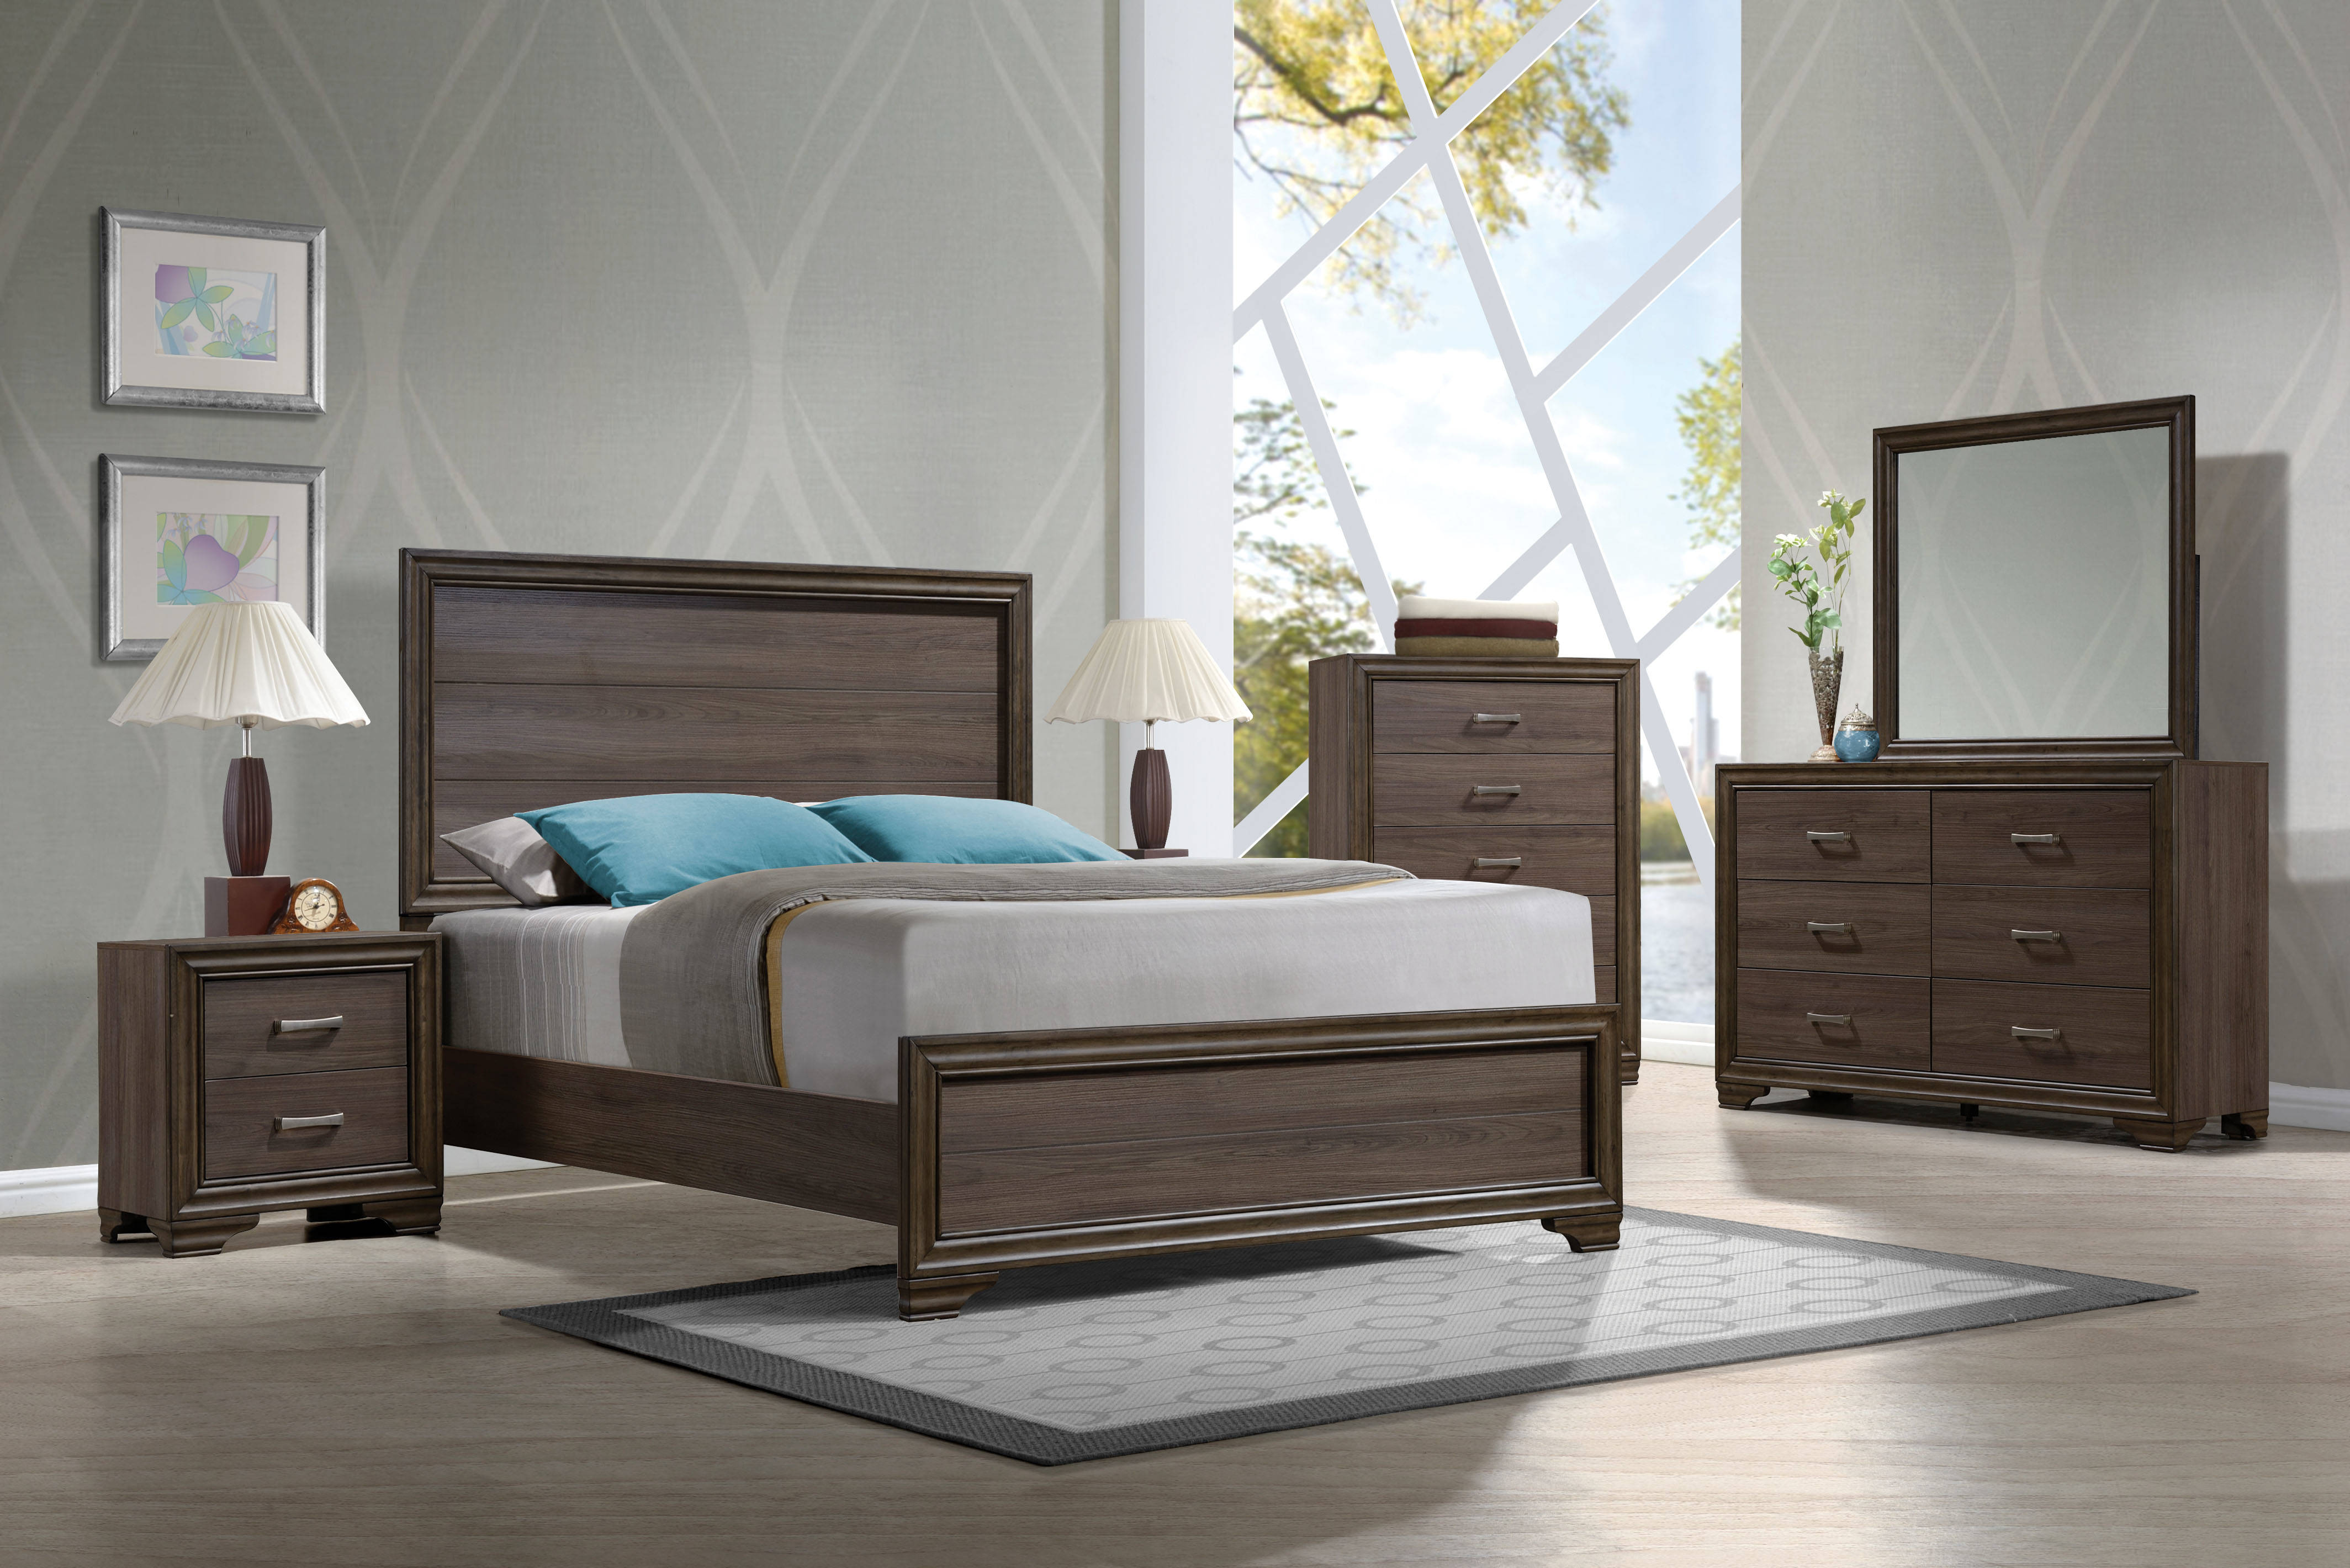 Cyrille Contemporary Walnut Solid Wood 5pc Bedroom Set W Cal King Bed The Classy Home